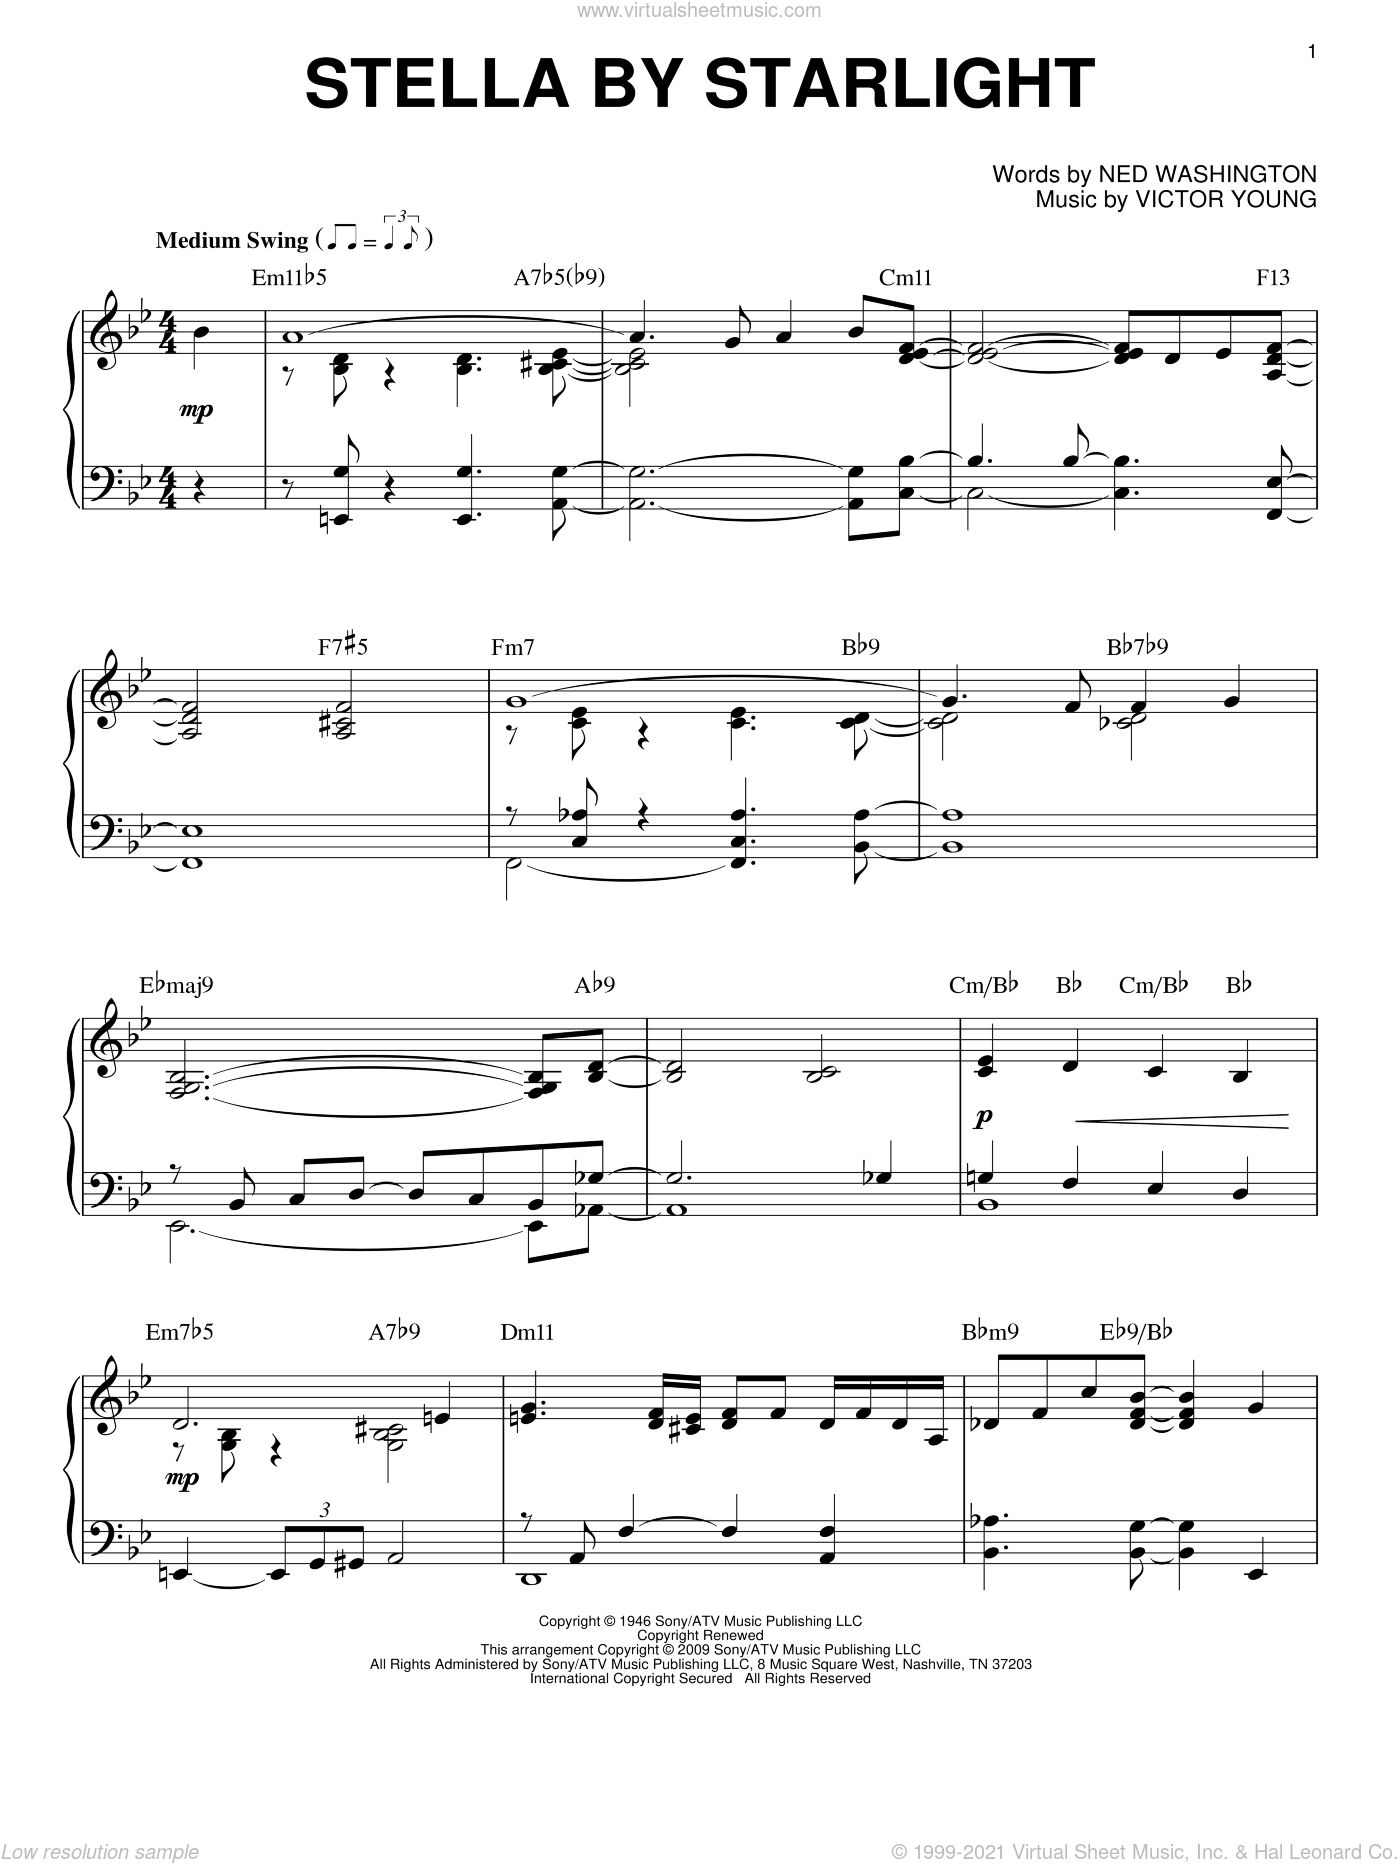 Stella By Starlight sheet music for piano solo by Ned Washington